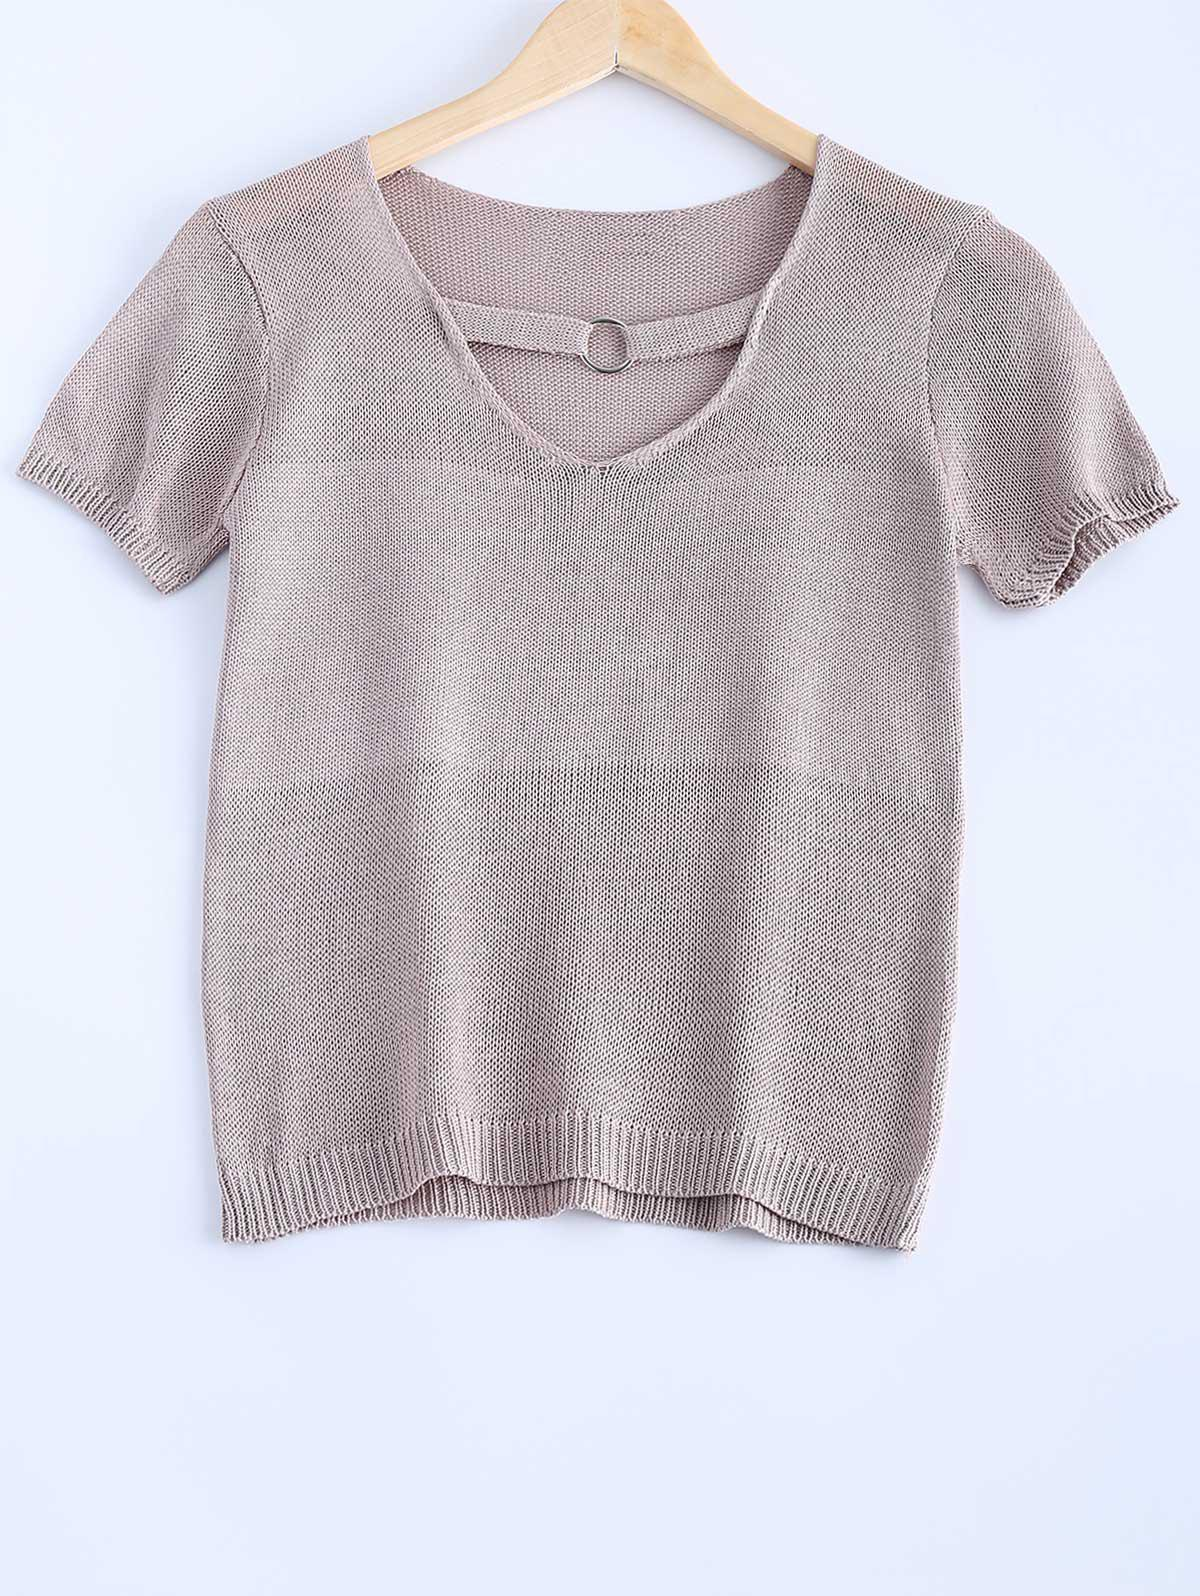 Stylish Women's Solid Color V-Neck Metallic Short Sleeves Knitwear - SHALLOW PINK ONE SIZE(FIT SIZE XS TO M)